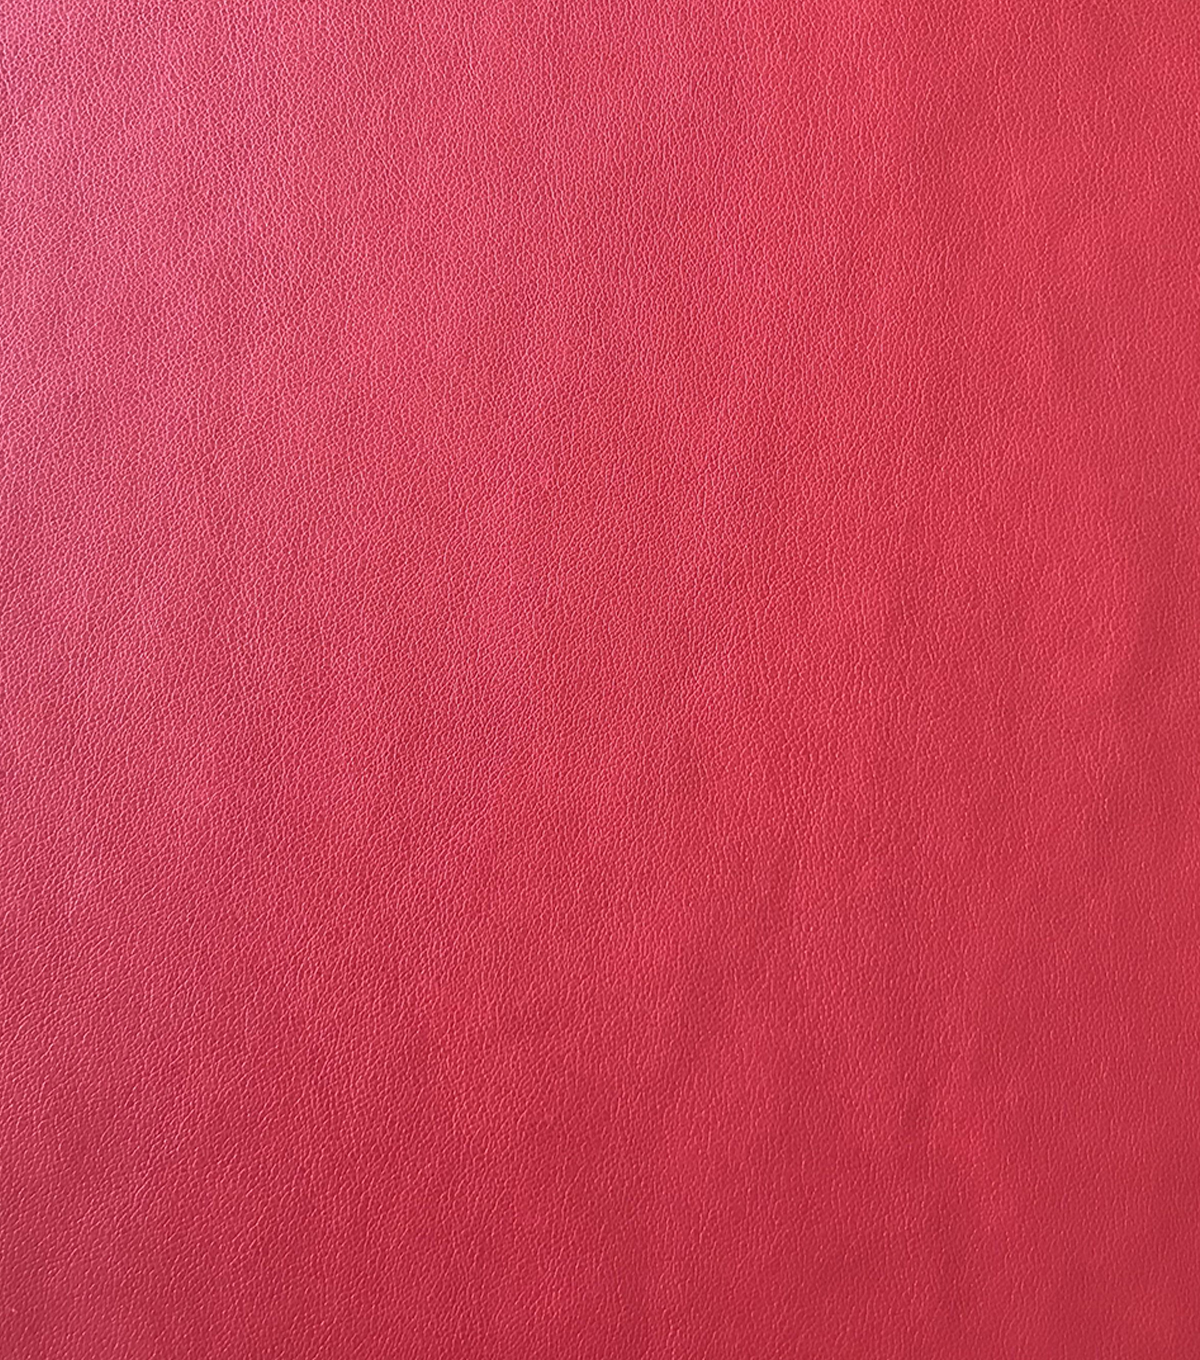 Holiday Shine Suede Back Faux Leather Fabric 56\u0022-Red